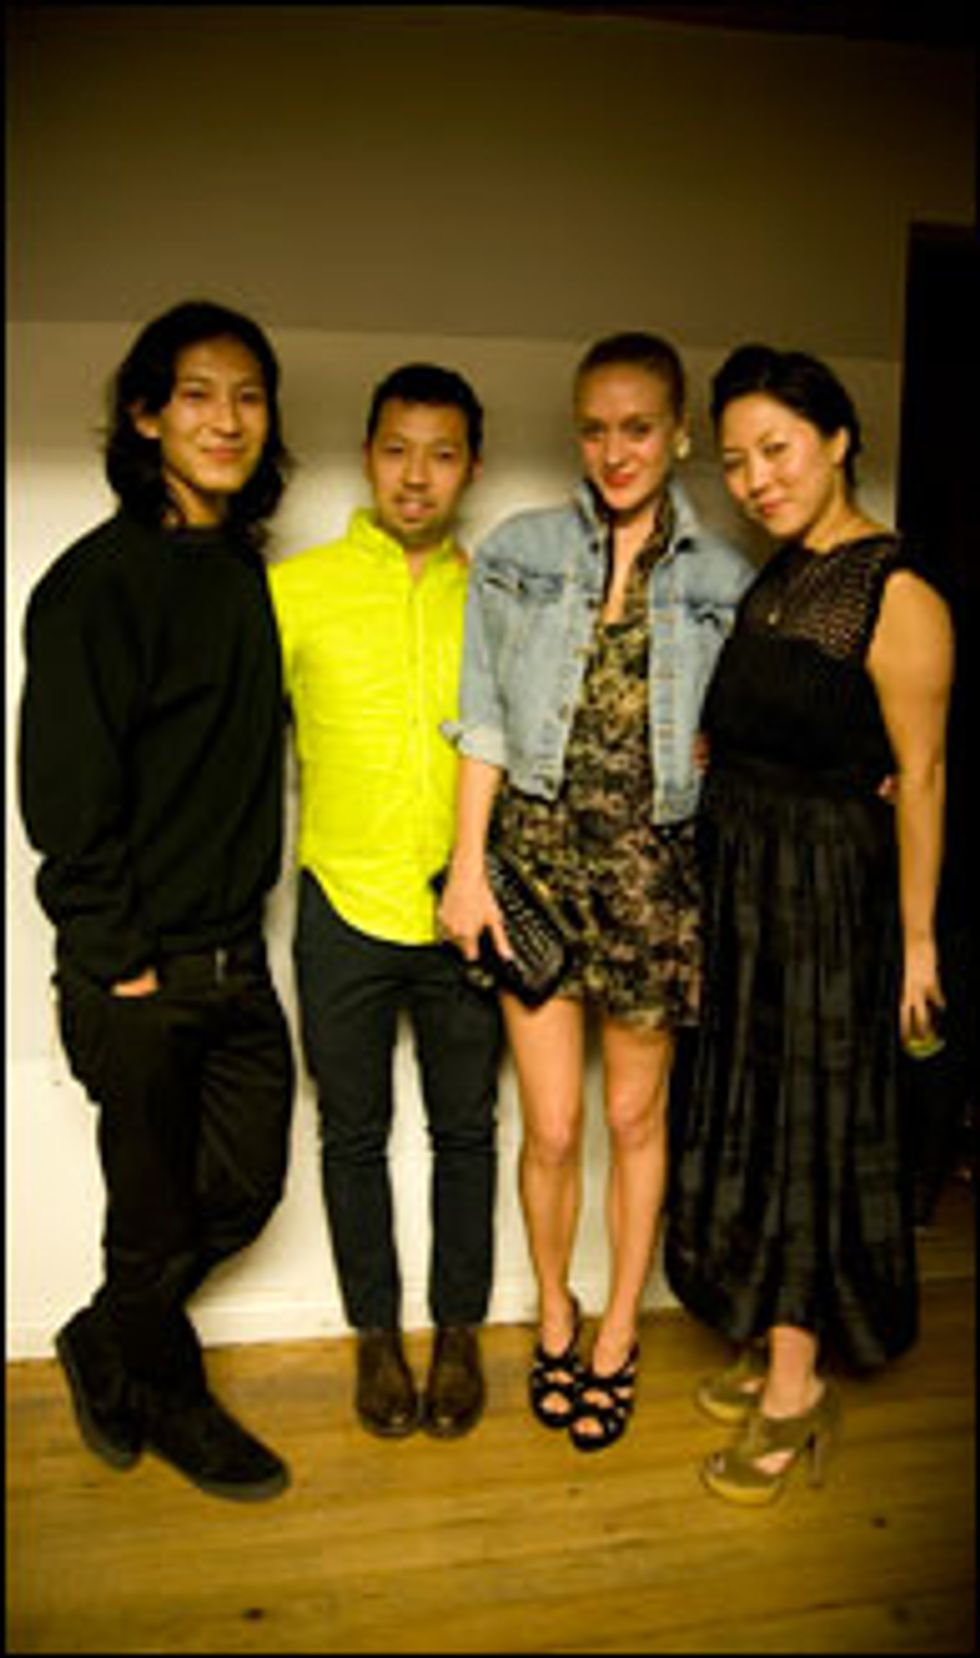 Opening Ceremony and M.I.A. Host Dinner to Celebrate Alexander Wang for Linda Farrow